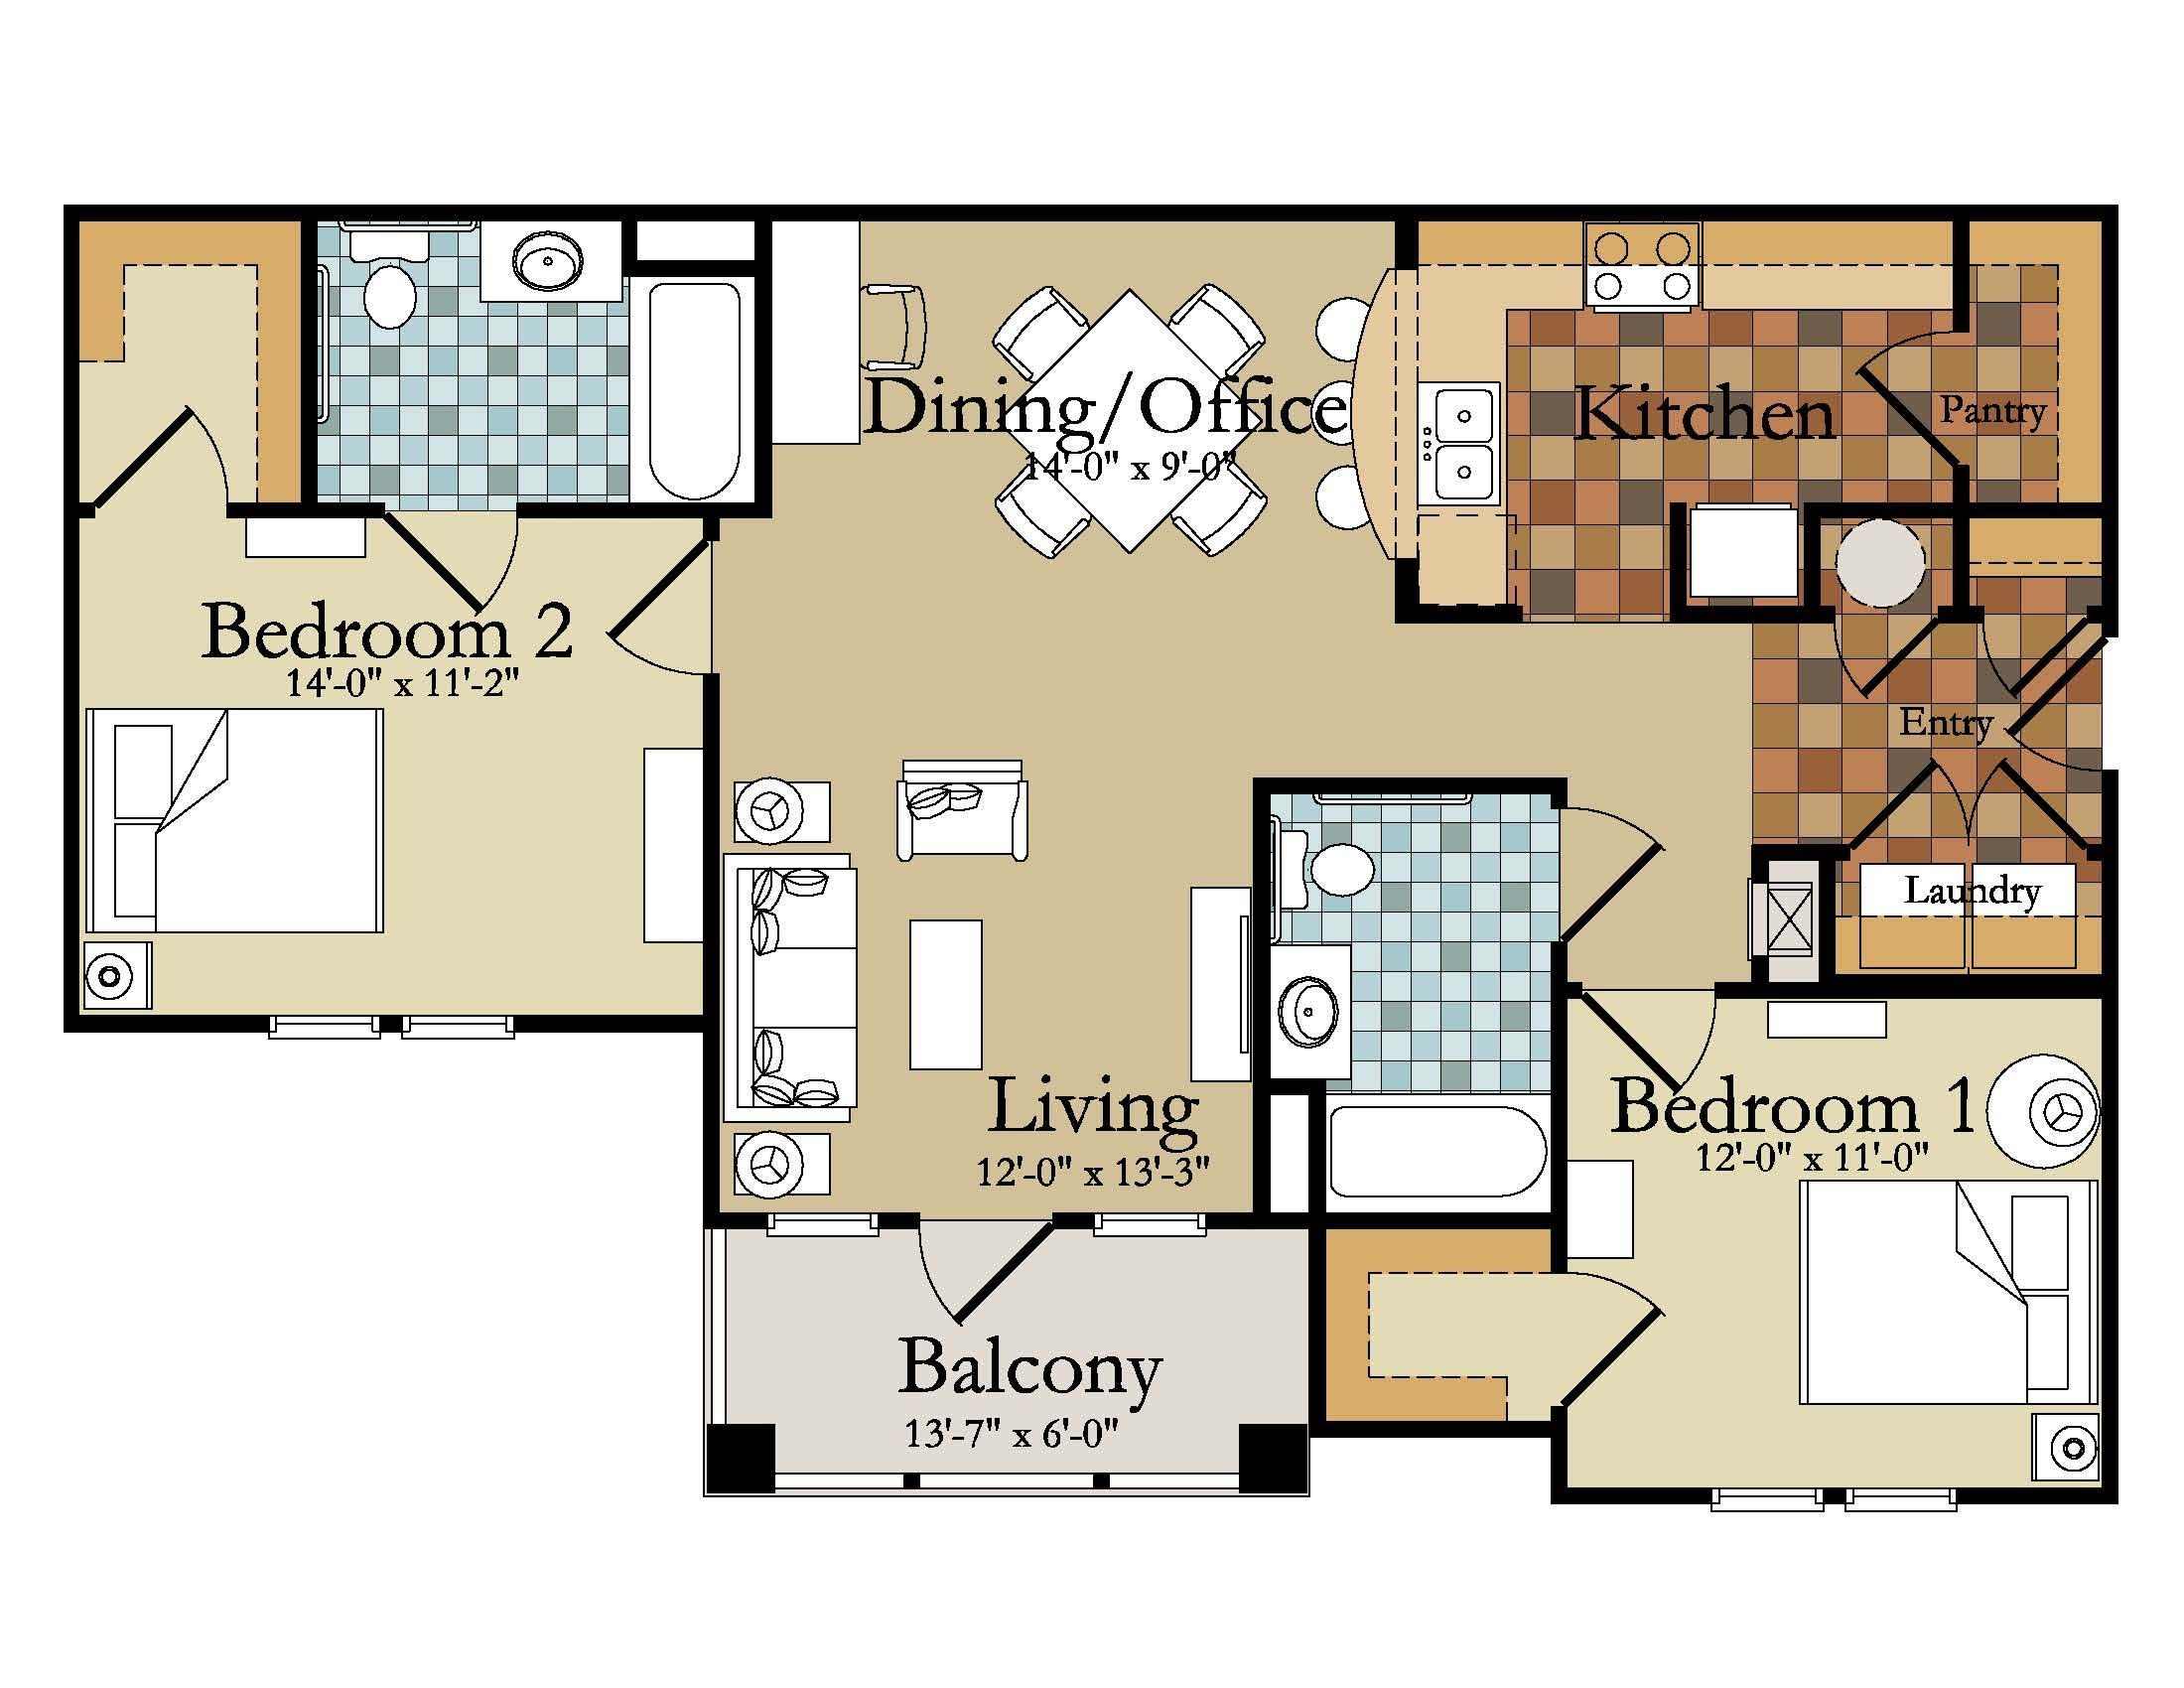 Two Bedroom Apartment Floor Plans By Apartments Apartment Springfield Mo The Abbey Along With Bedroom House Plans Modern House Plans 2 Bedroom House Design